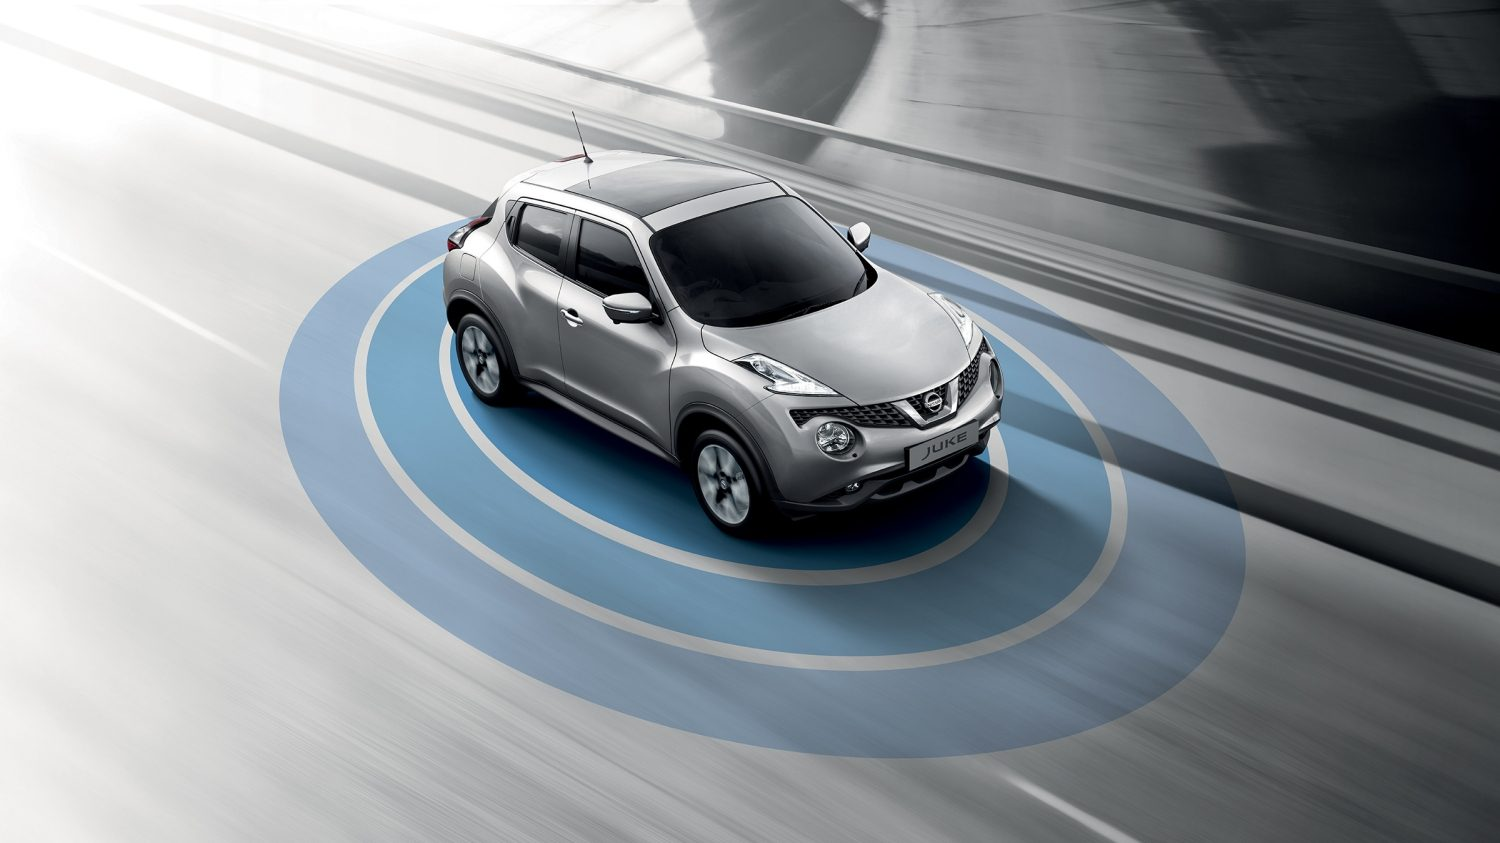 Versioni speciali SUV compatto & piccolo - N-Vision con Safety Shield | Nissan Juke